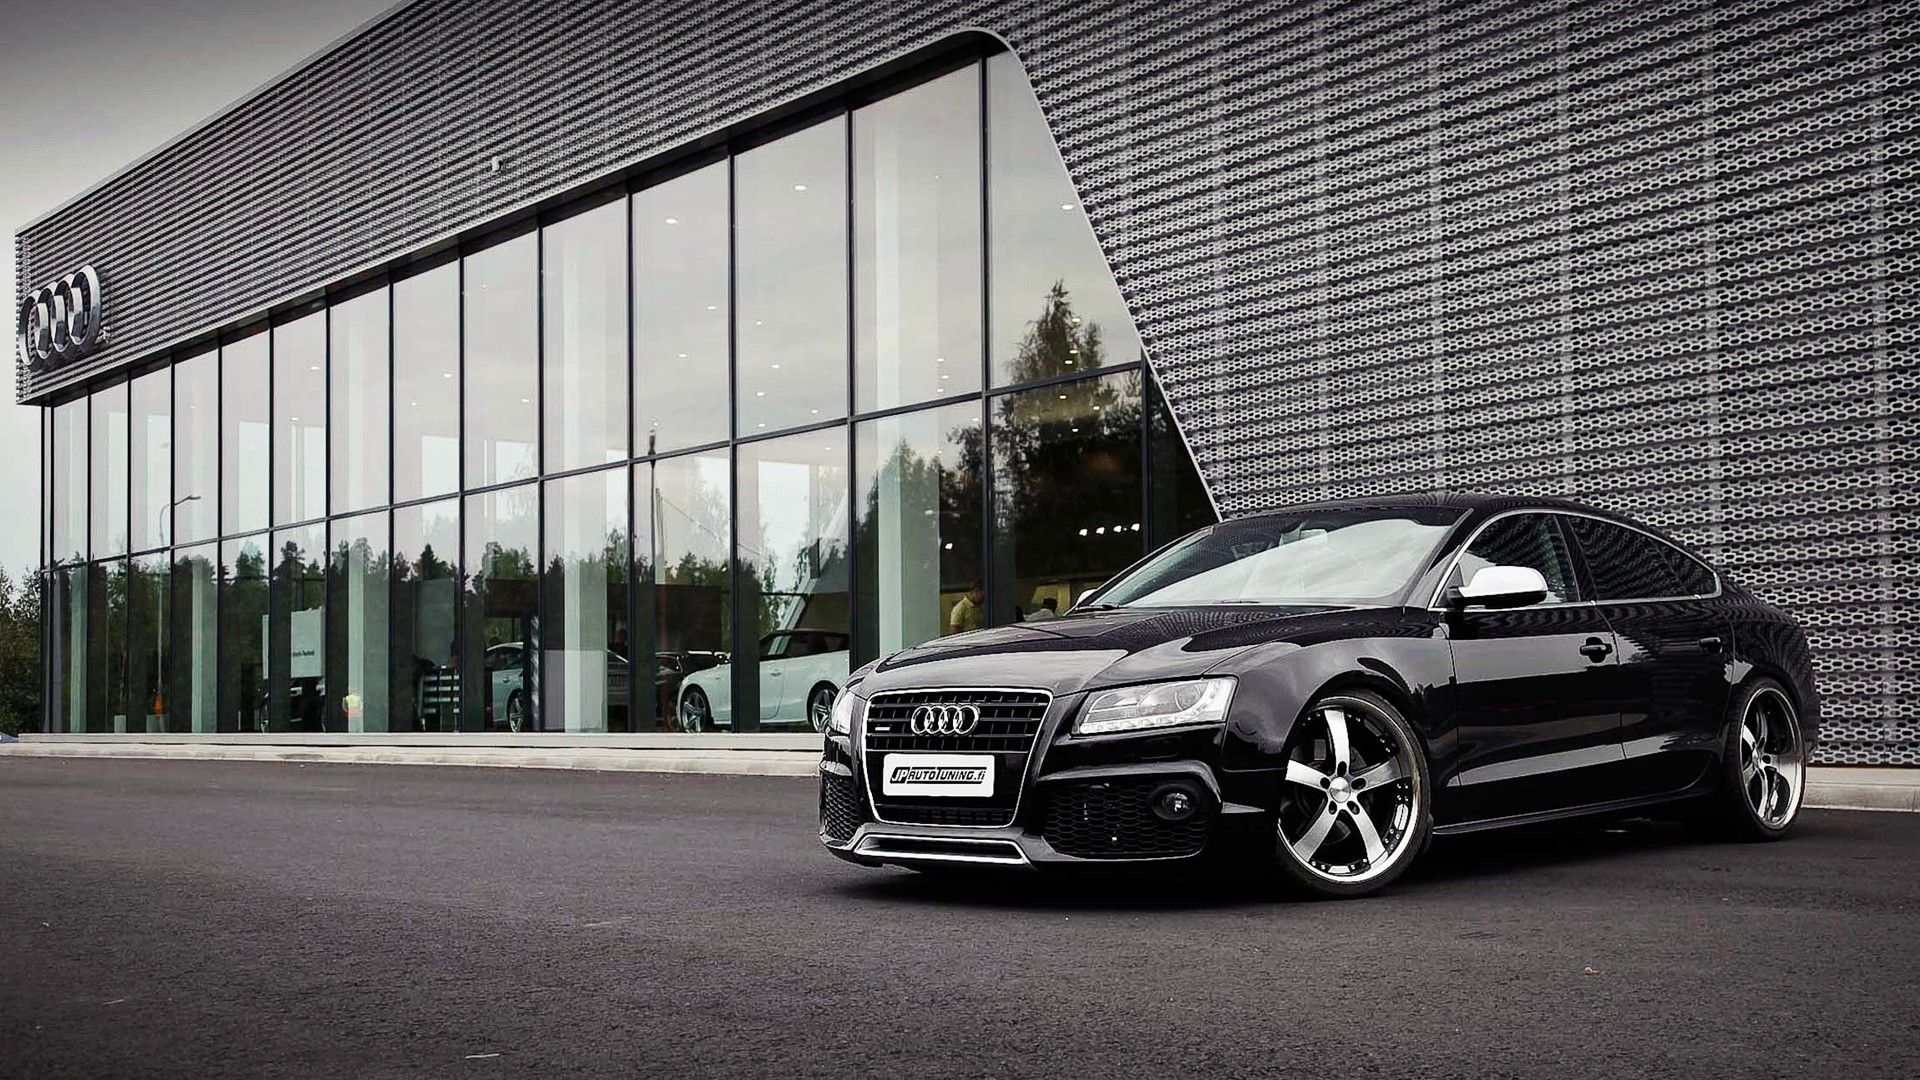 Audi RS5 Black HD Wallpaper, Backgrounds Image